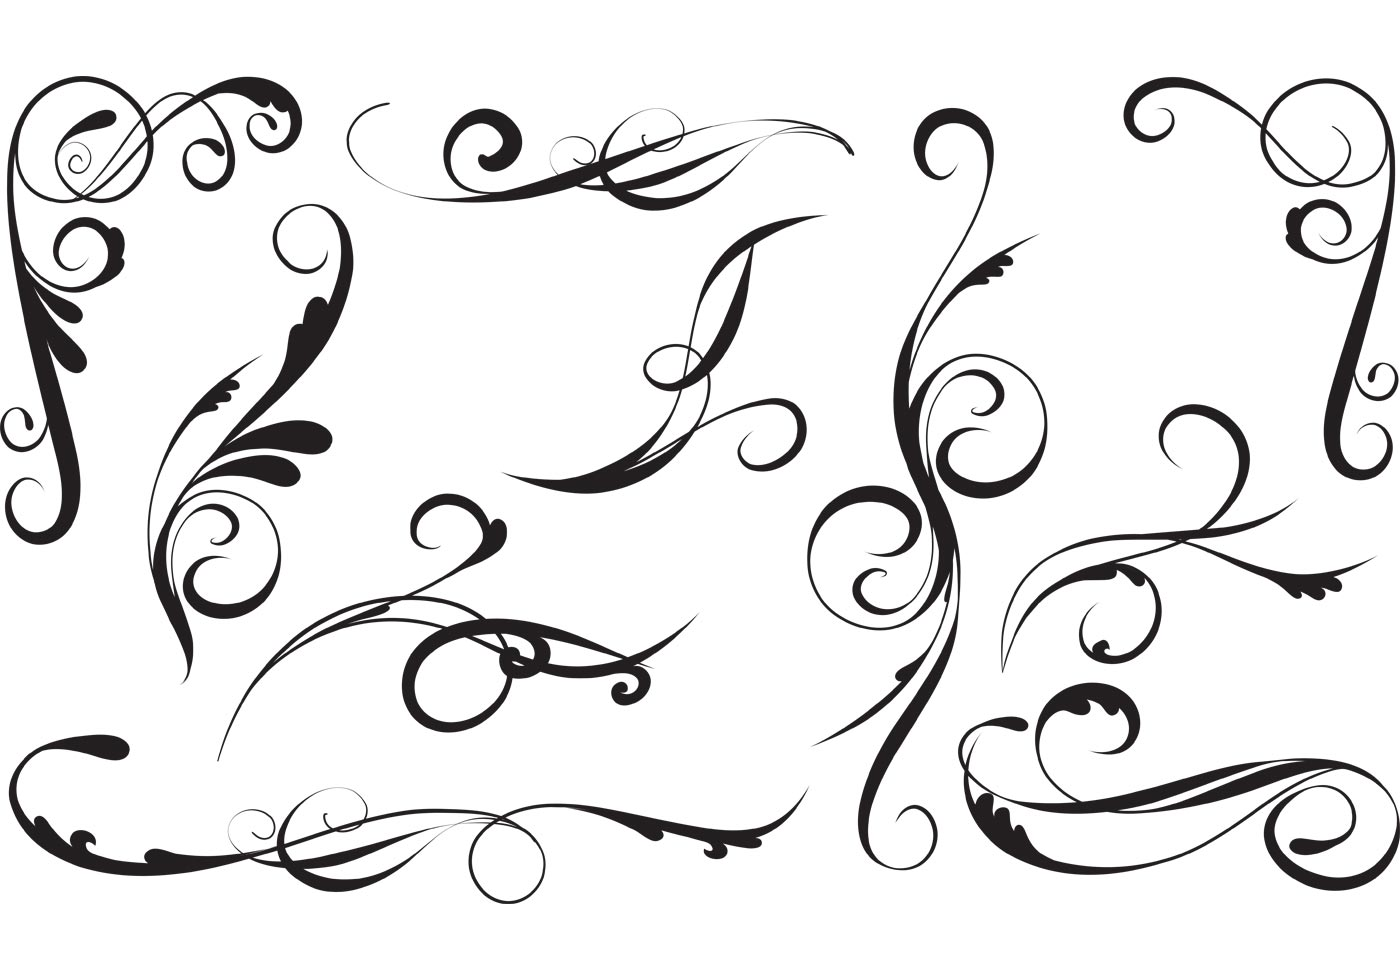 11 Elegant Vector Flourishes Images